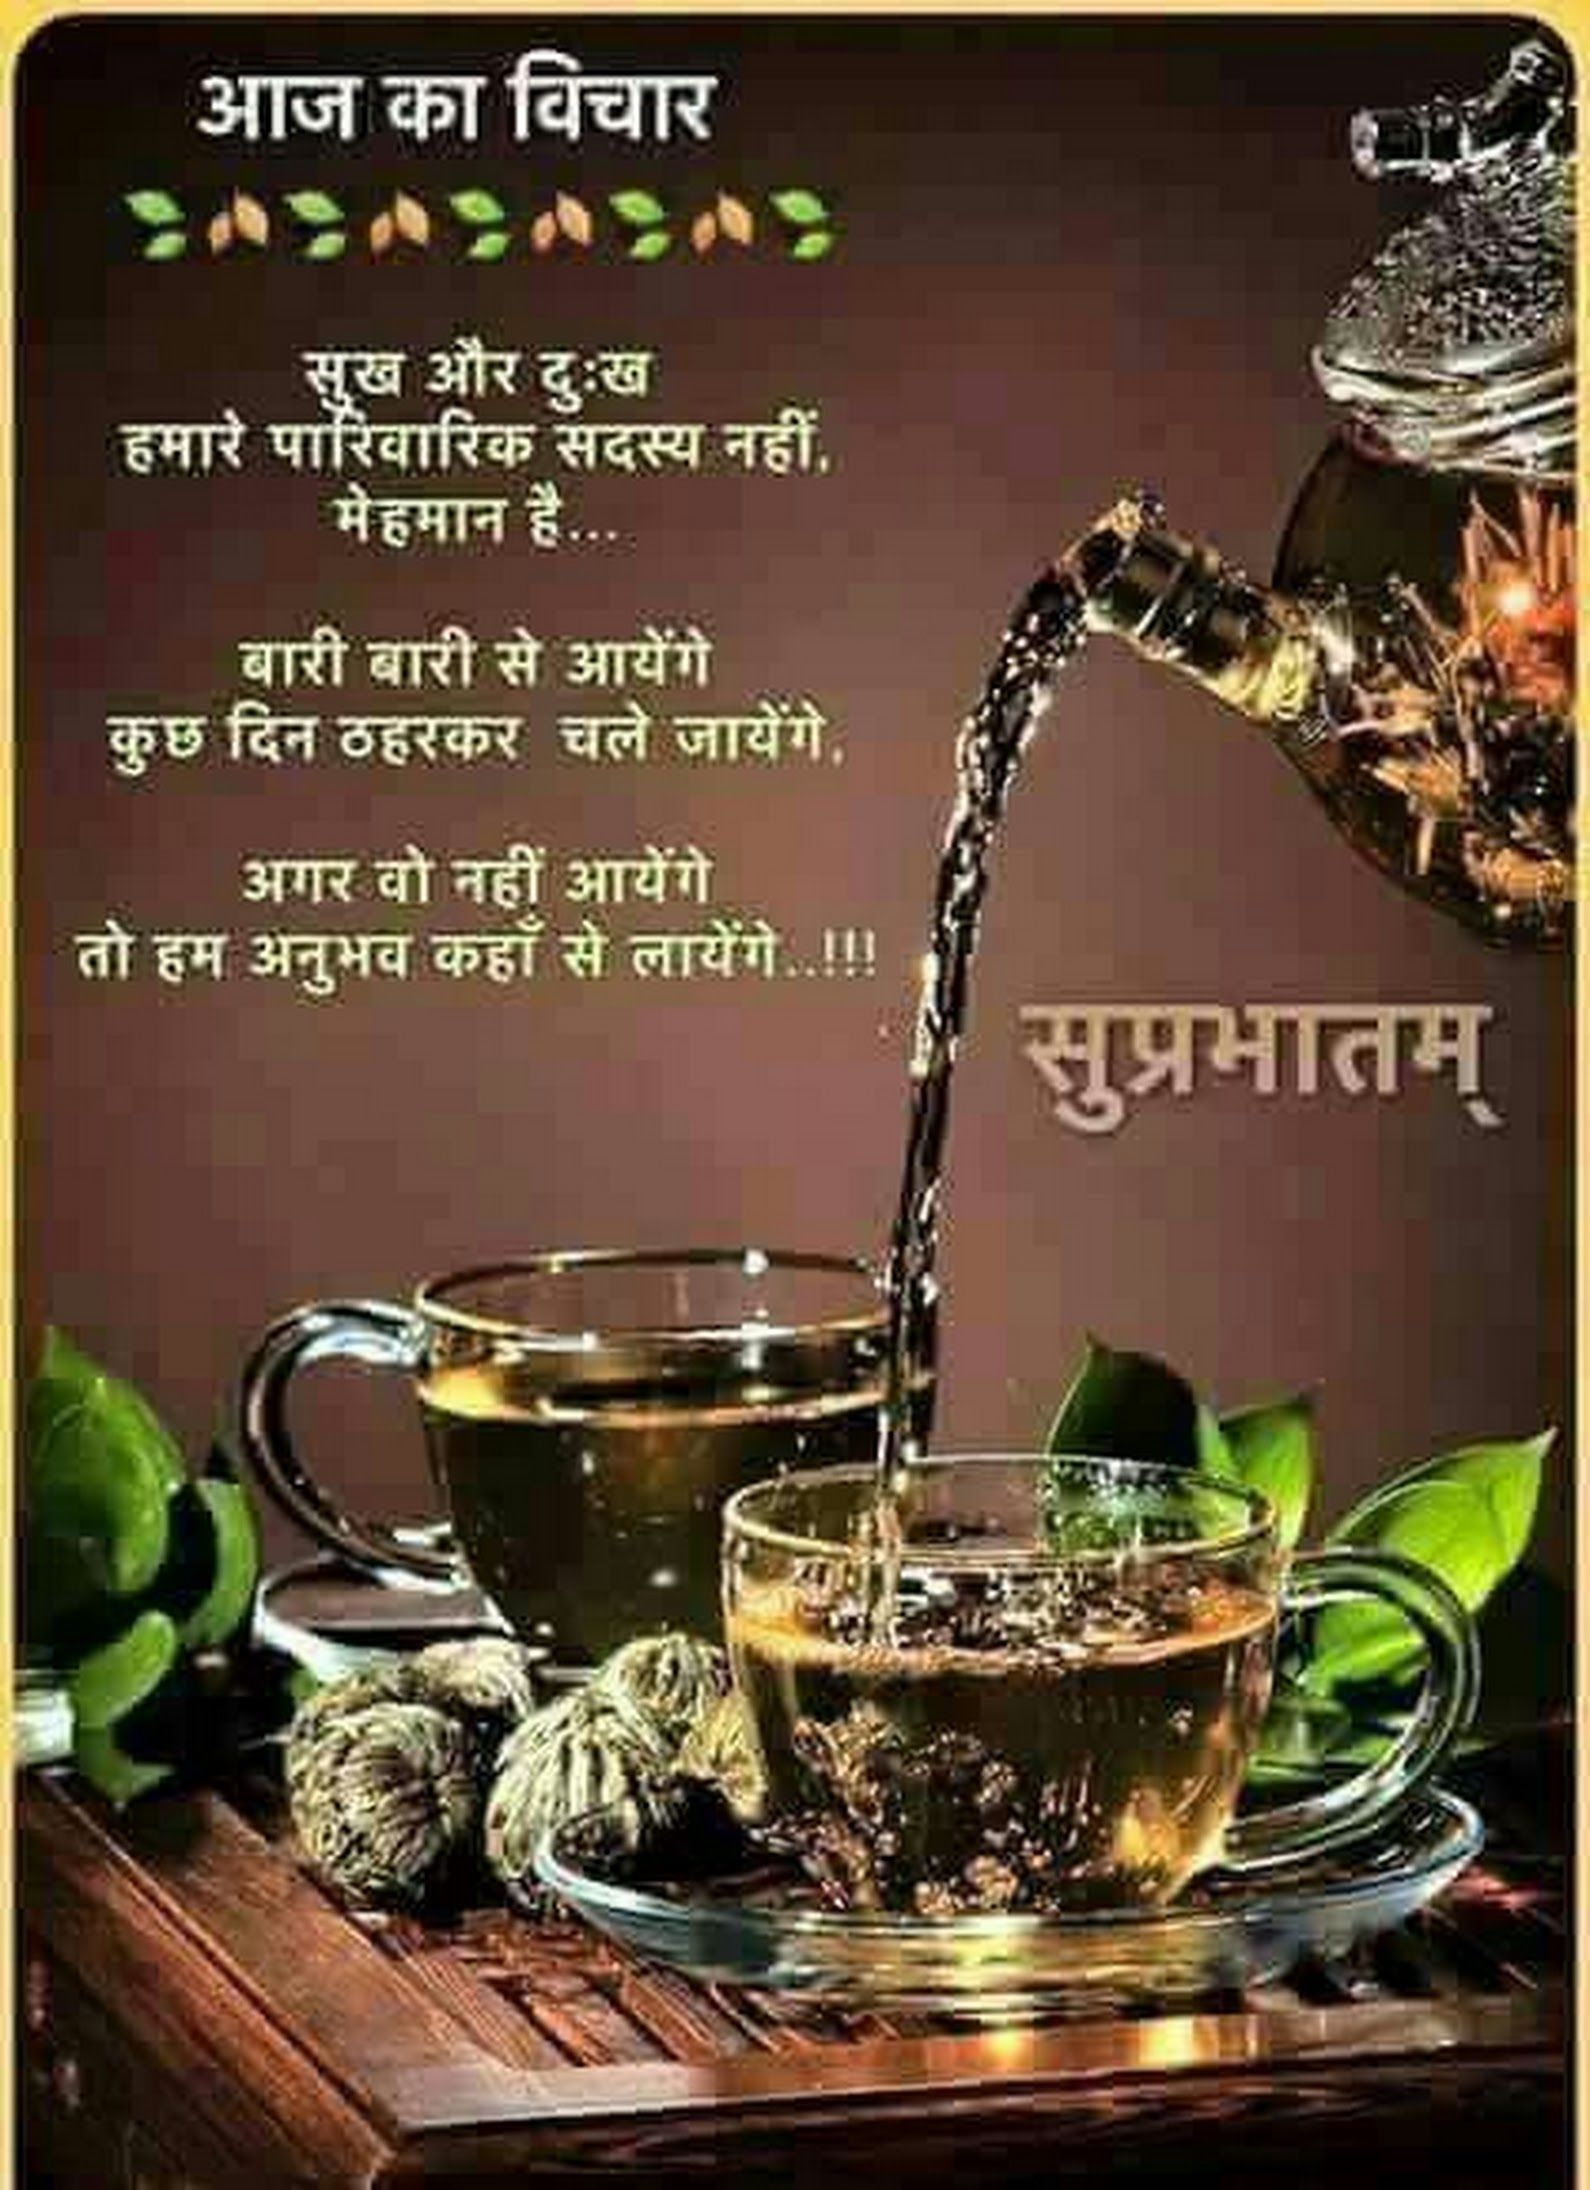 Sign in | Morning images in hindi, Morning images, Hindi ...